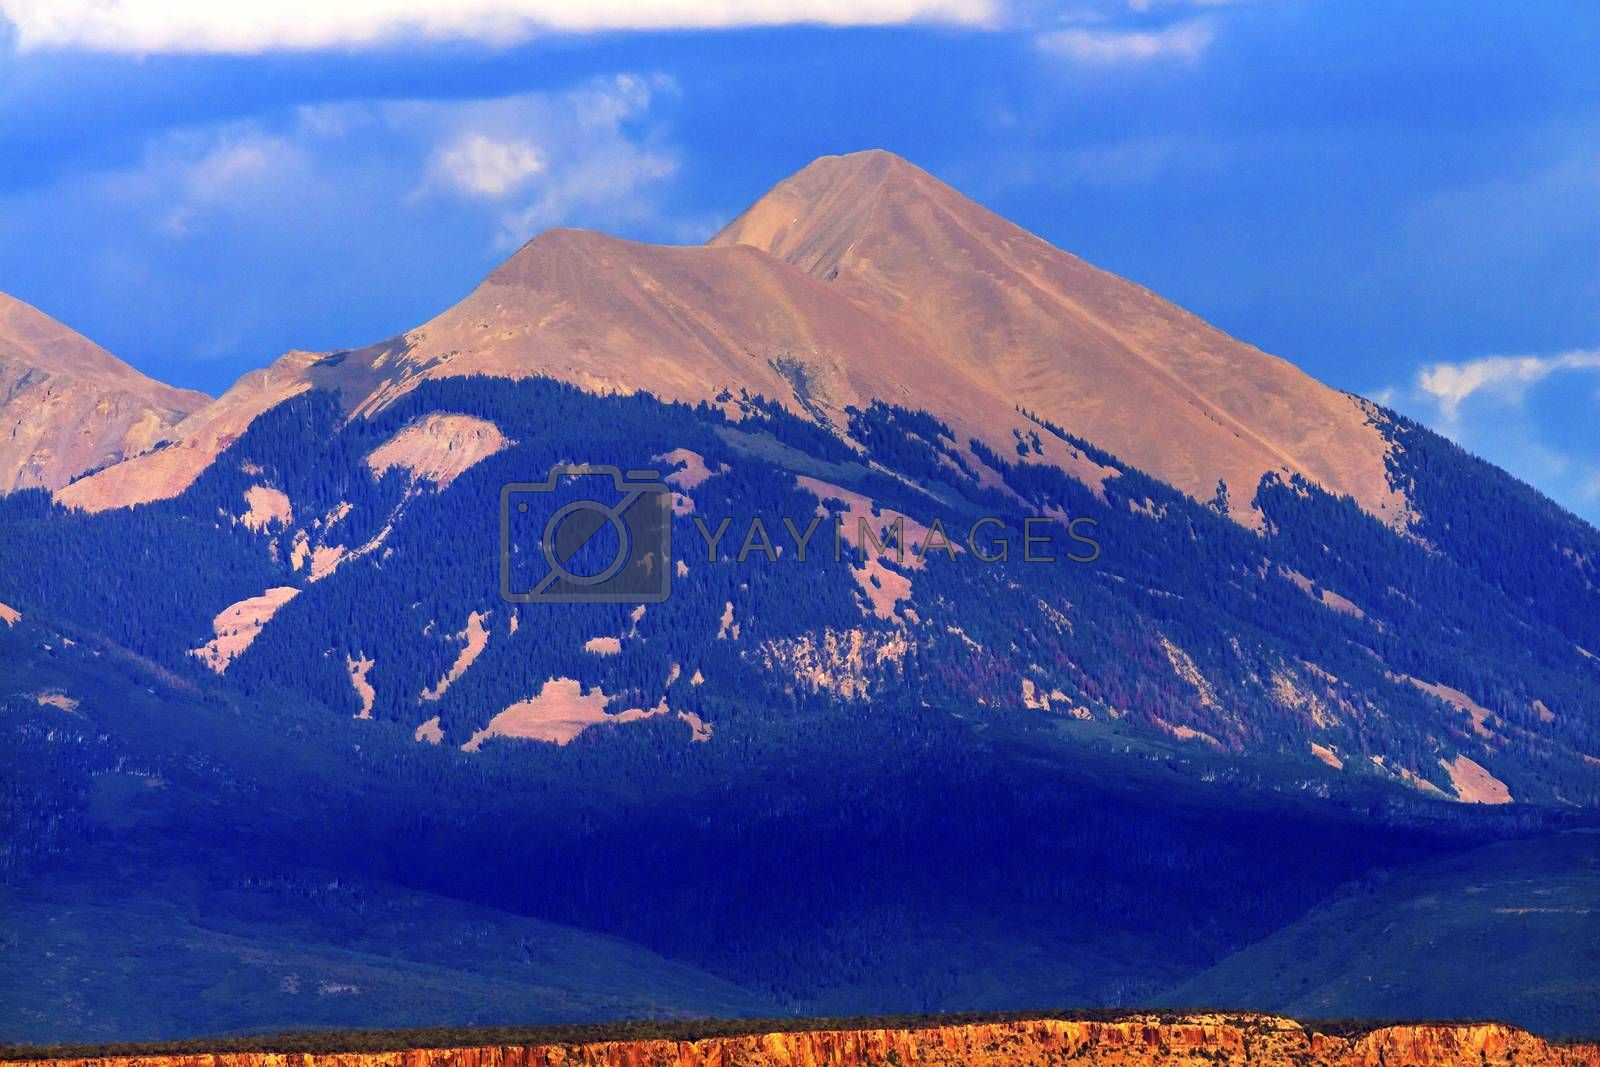 Royalty free image of La Salle Mountains Rock Canyon Arches National Park Moab Utah  by bill_perry